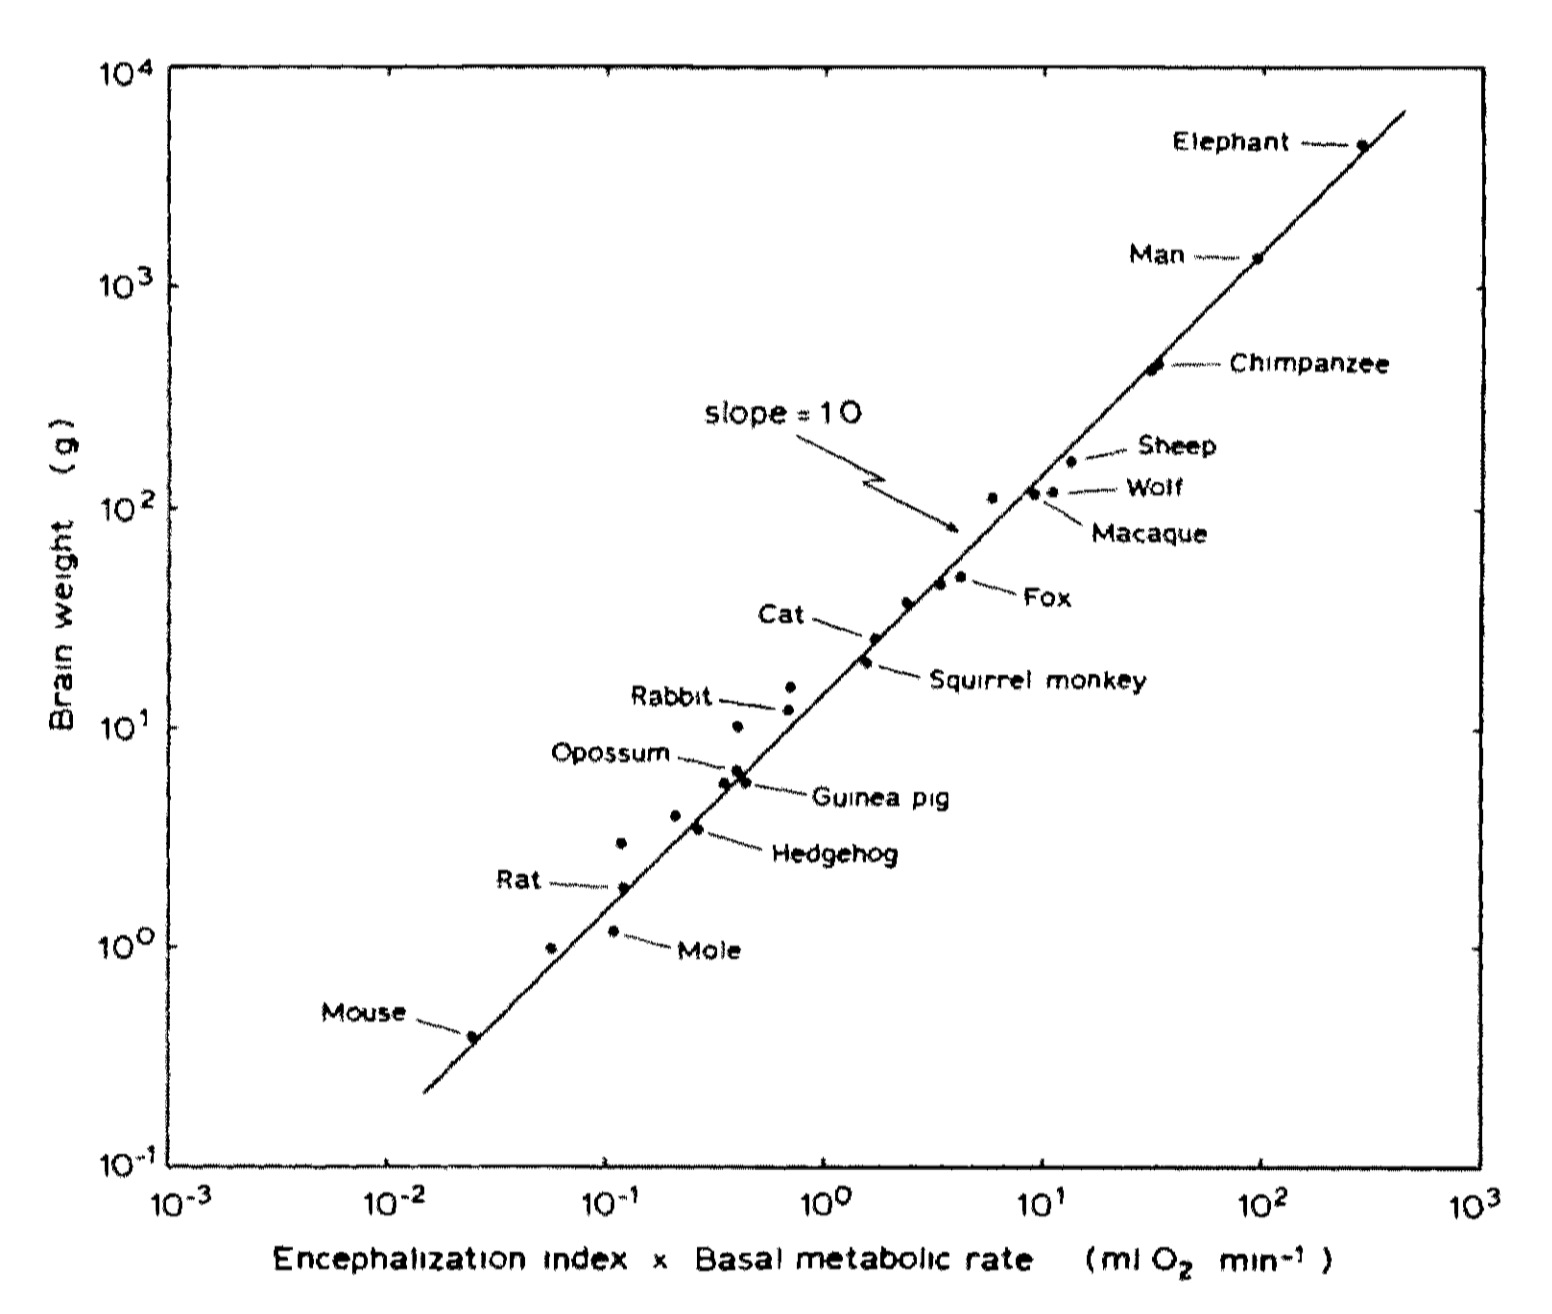 Image : Brain weight as a function of the degree of encephalization multiplied by the basal metabolic rate. Hofman (1983)